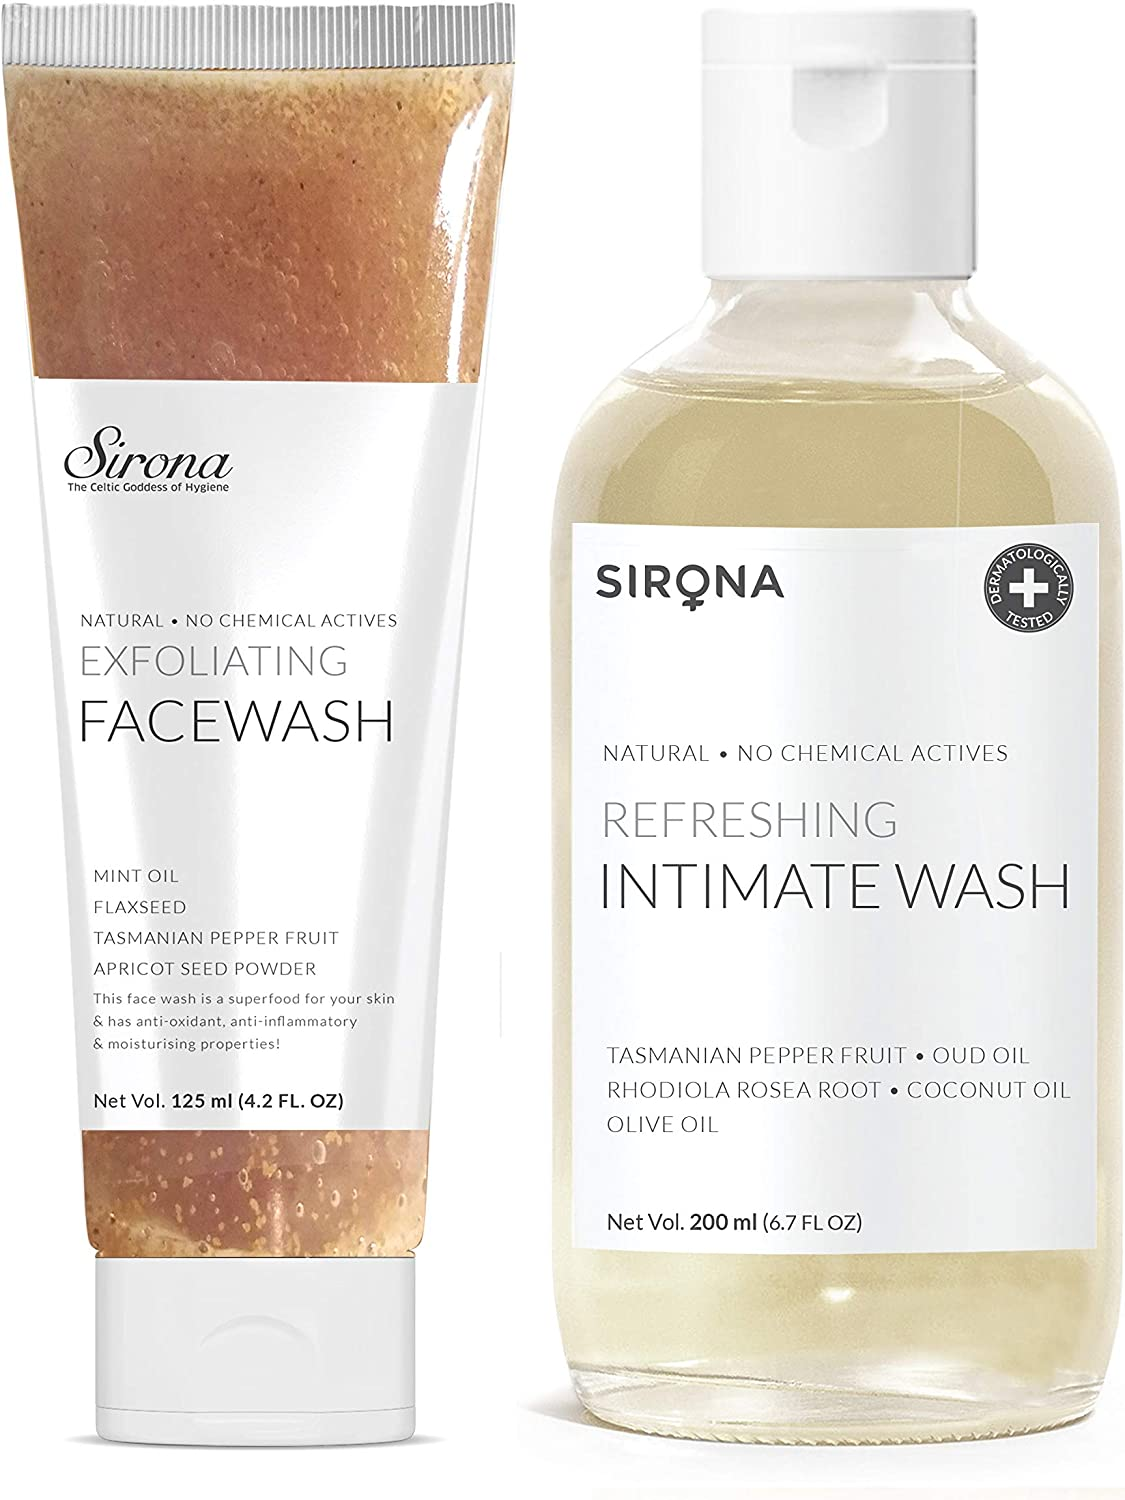 Sirona Natural Intimate Feminine Hygiene Wash - 6.7 Fl Oz   No Chemical, No Irritation + Natural Exfoliating Face Wash - 4.2 Fl Oz (with Apricot, Flax-Seed Extracts & Mint Oil)